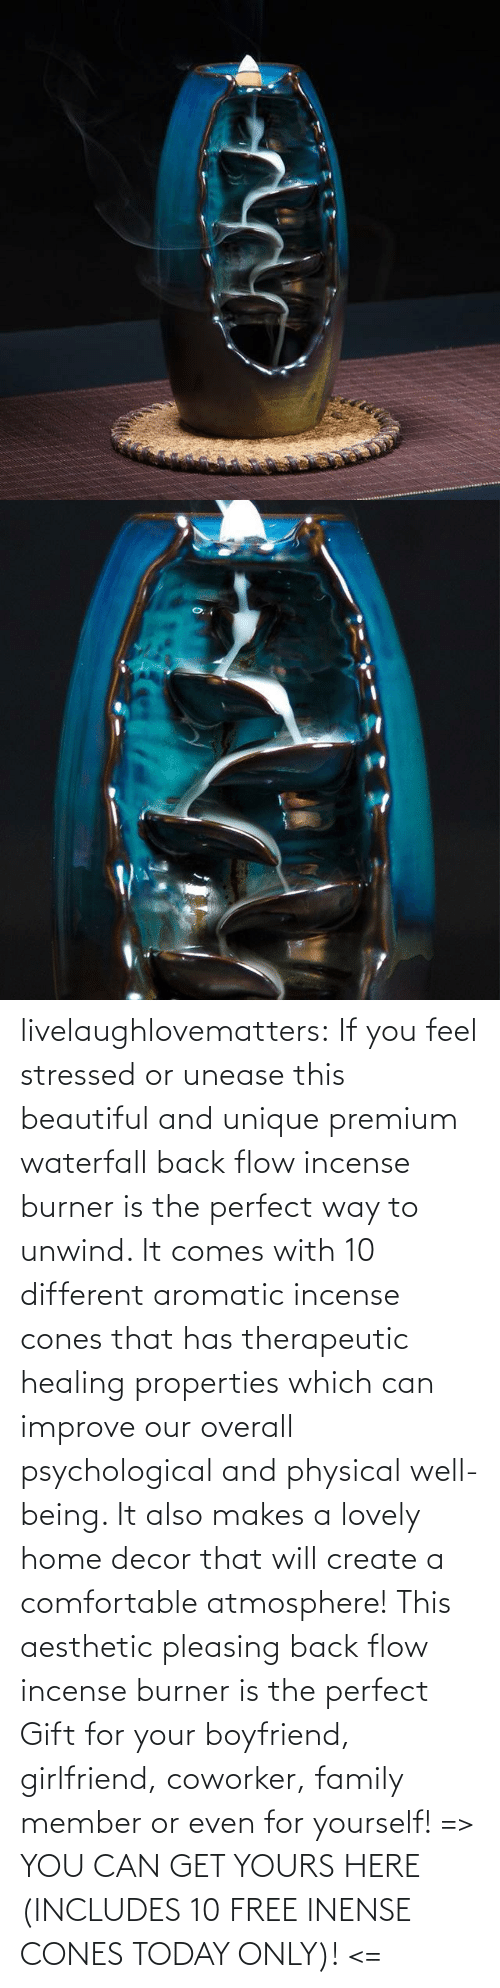 comfortable: livelaughlovematters: If you feel stressed or unease this beautiful and unique premium waterfall back flow incense burner is the perfect way to unwind. It comes with 10 different aromatic incense cones that has therapeutic healing properties which can improve our overall psychological and physical well-being. It also makes a lovely home decor that will create a comfortable atmosphere! This aesthetic pleasing back flow incense burner is the perfect Gift for your boyfriend, girlfriend, coworker, family member or even for yourself! => YOU CAN GET YOURS HERE (INCLUDES 10 FREE INENSE CONES TODAY ONLY)! <=